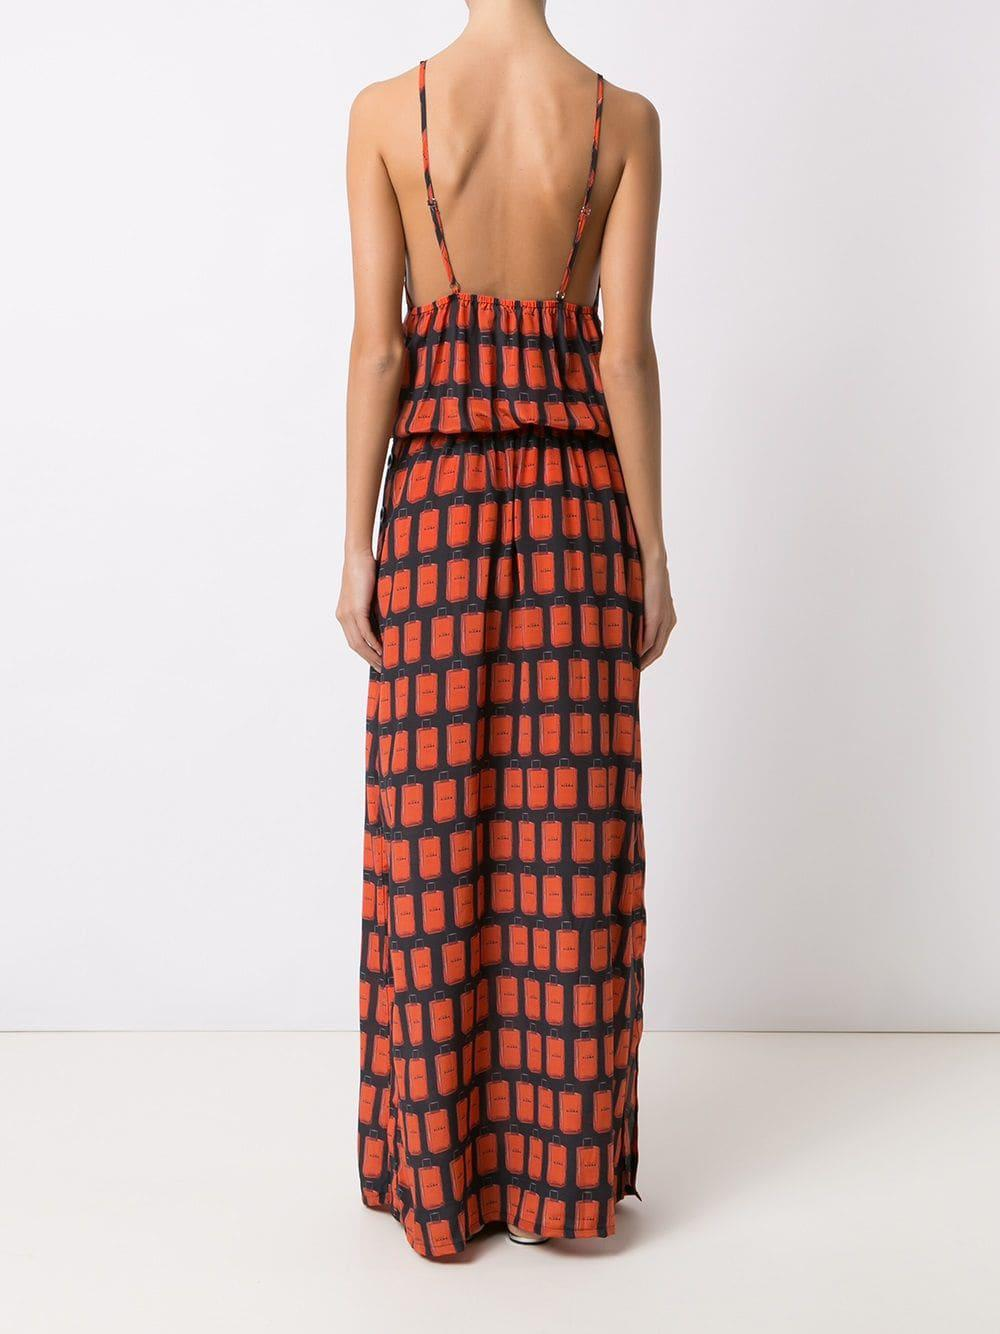 21be330a6c54 Lyst - Amir Slama Printed Long Dress in Black